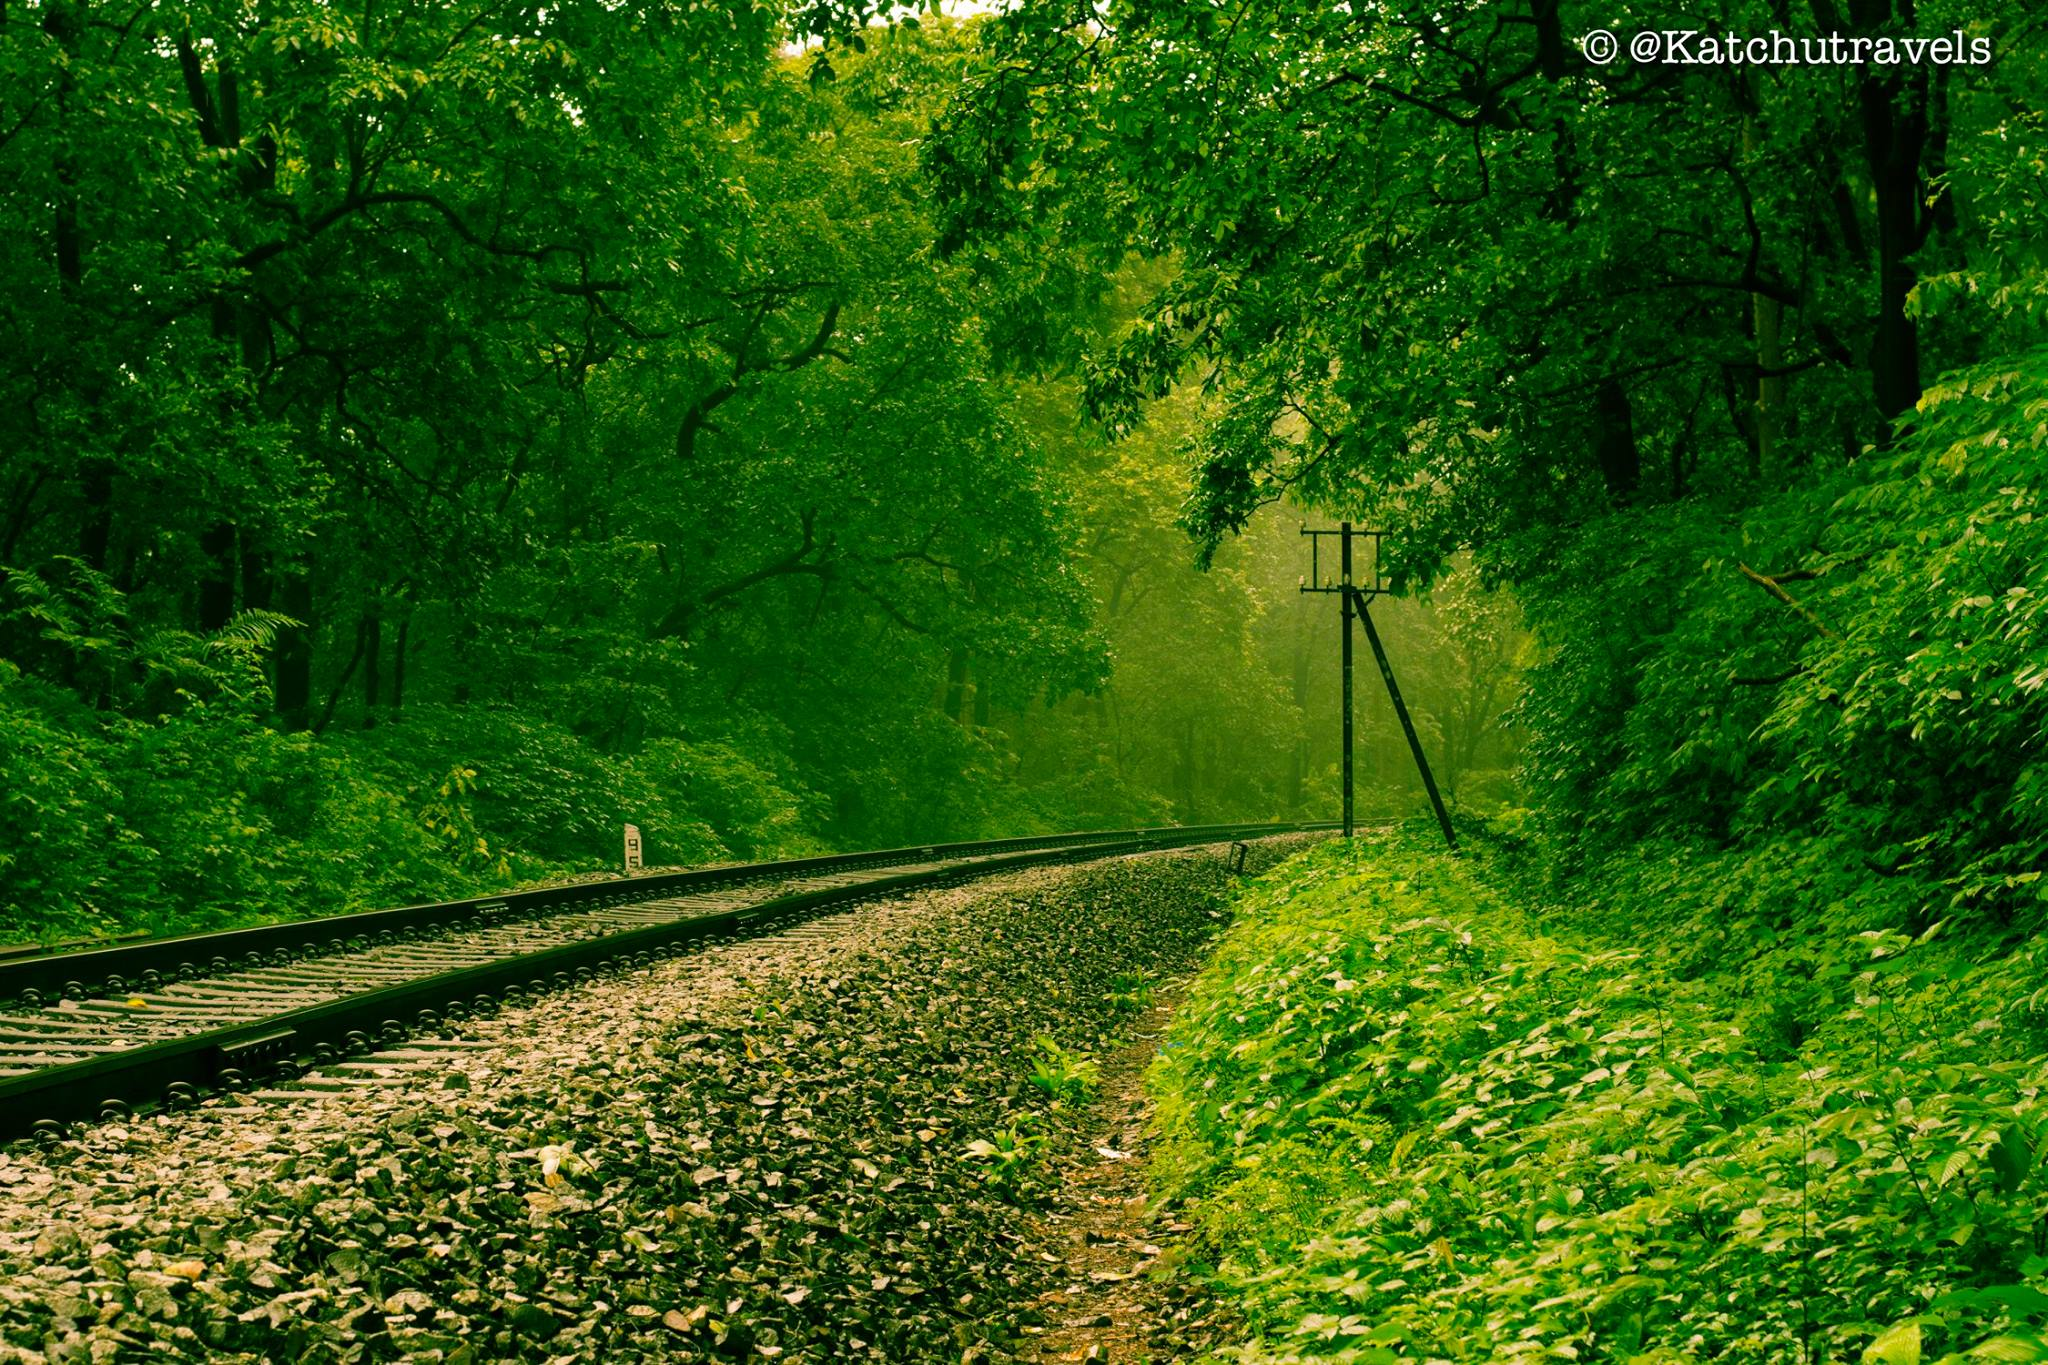 Railways crossing through verdant scenery in Goa(Kulem)